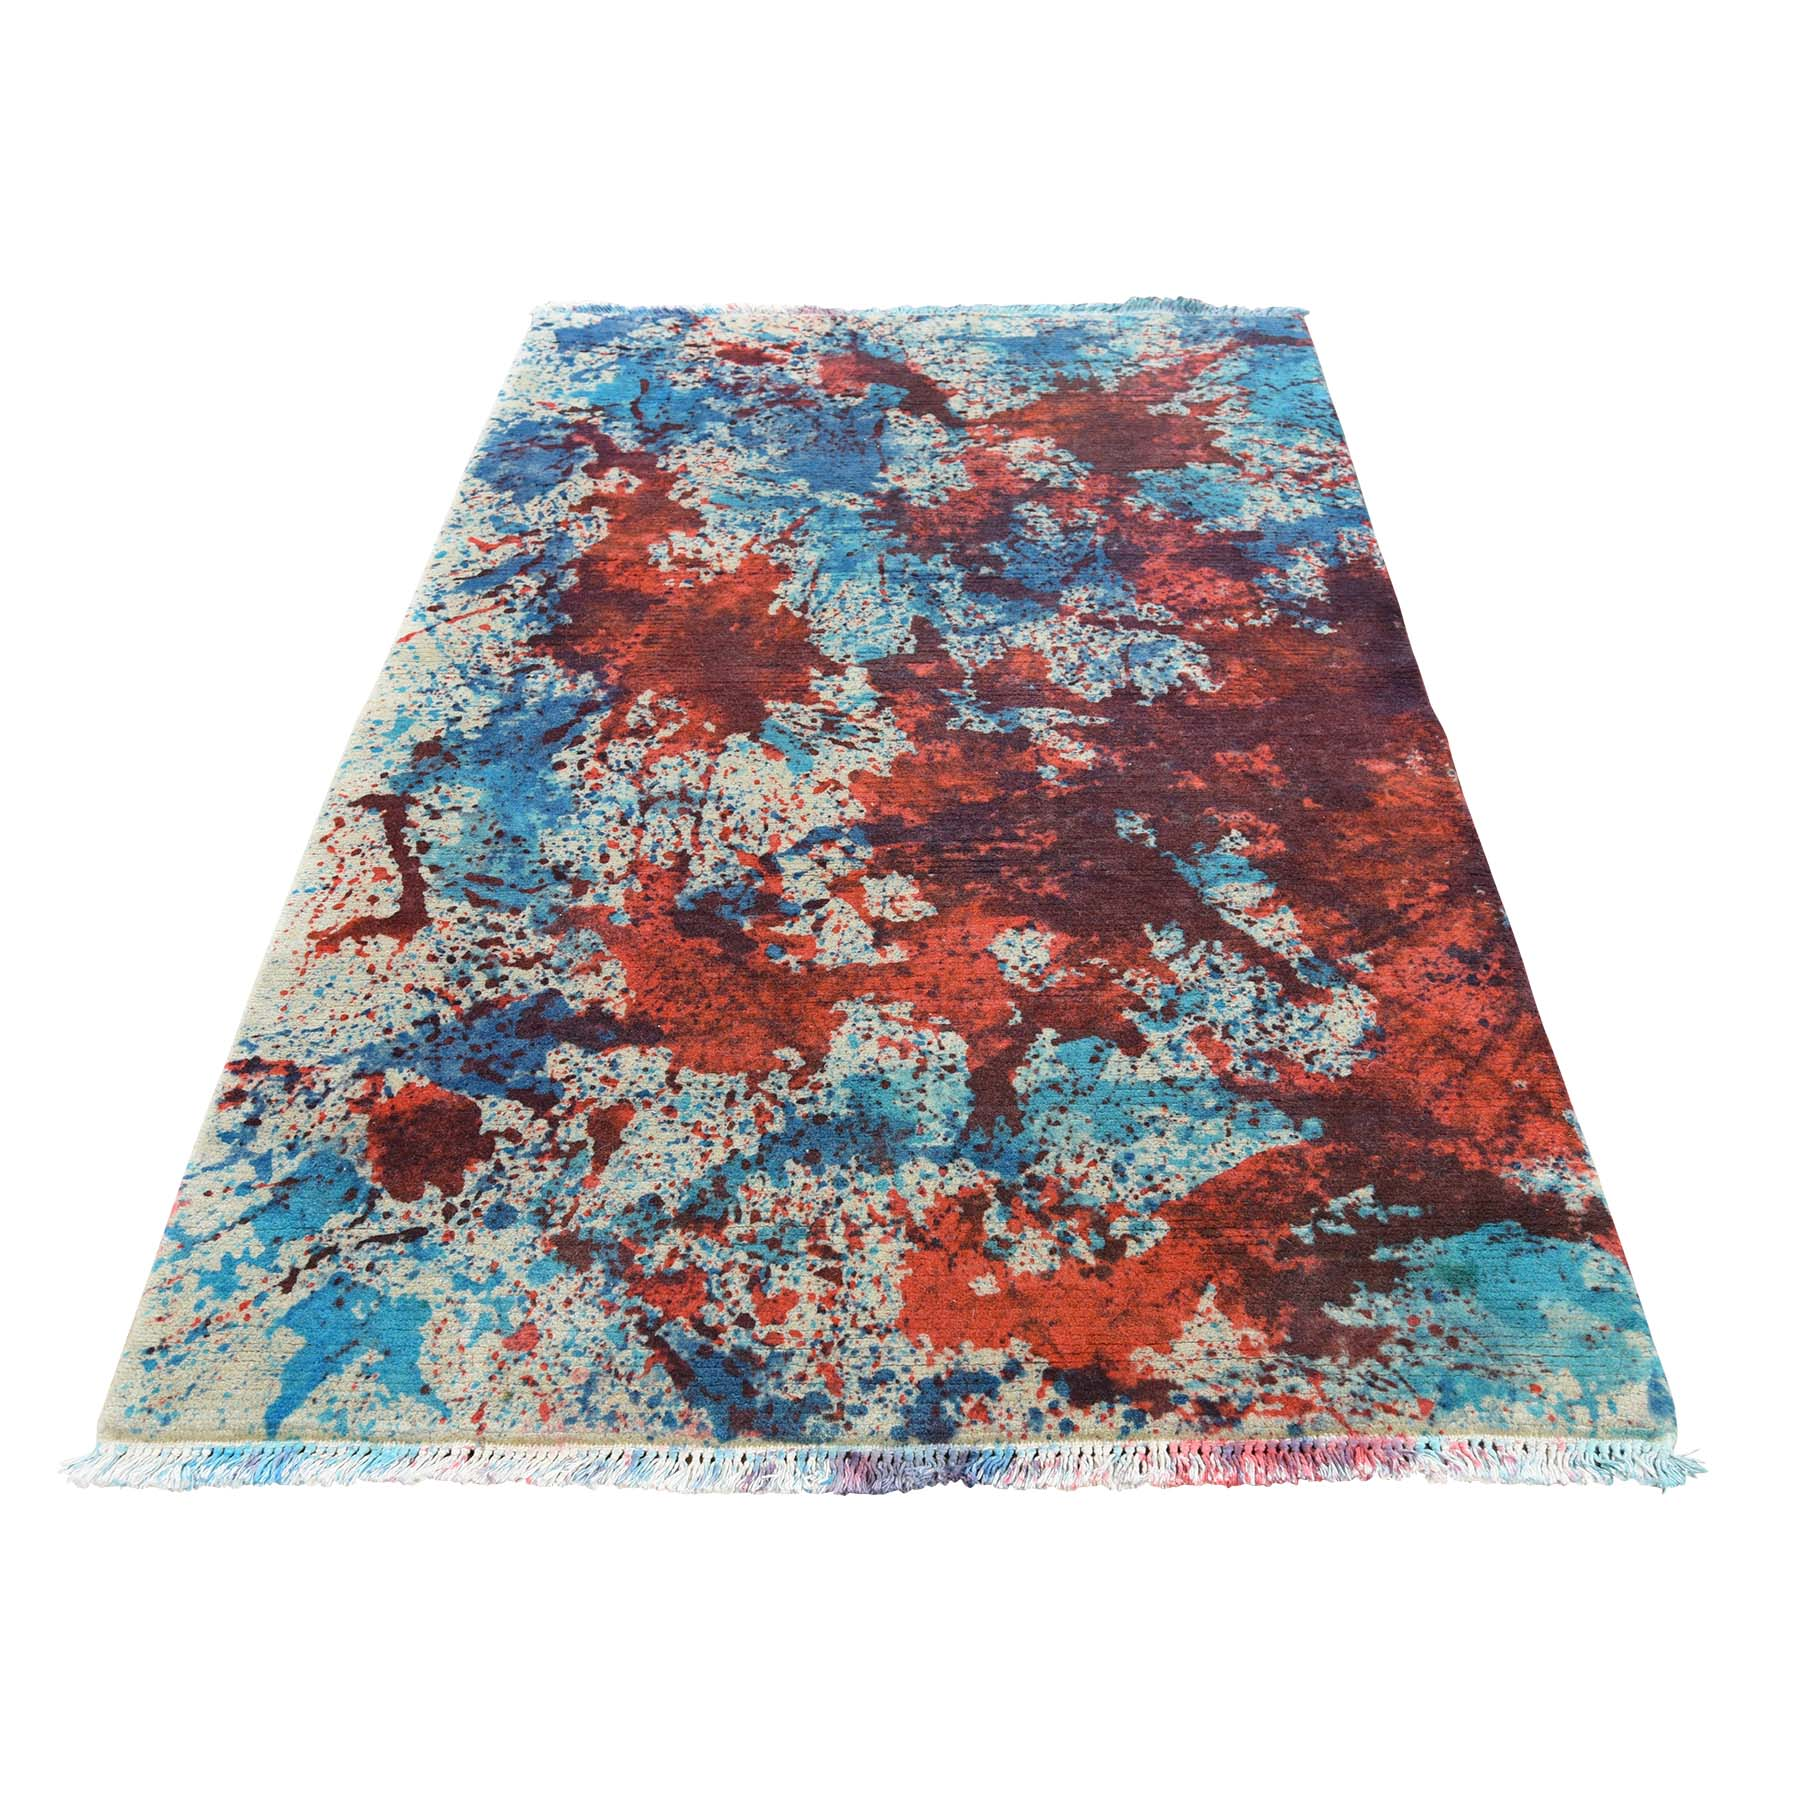 3'X4'10'' Hand Knotted Abstract Tie Dye Nepali Oriental Rug moac89ac